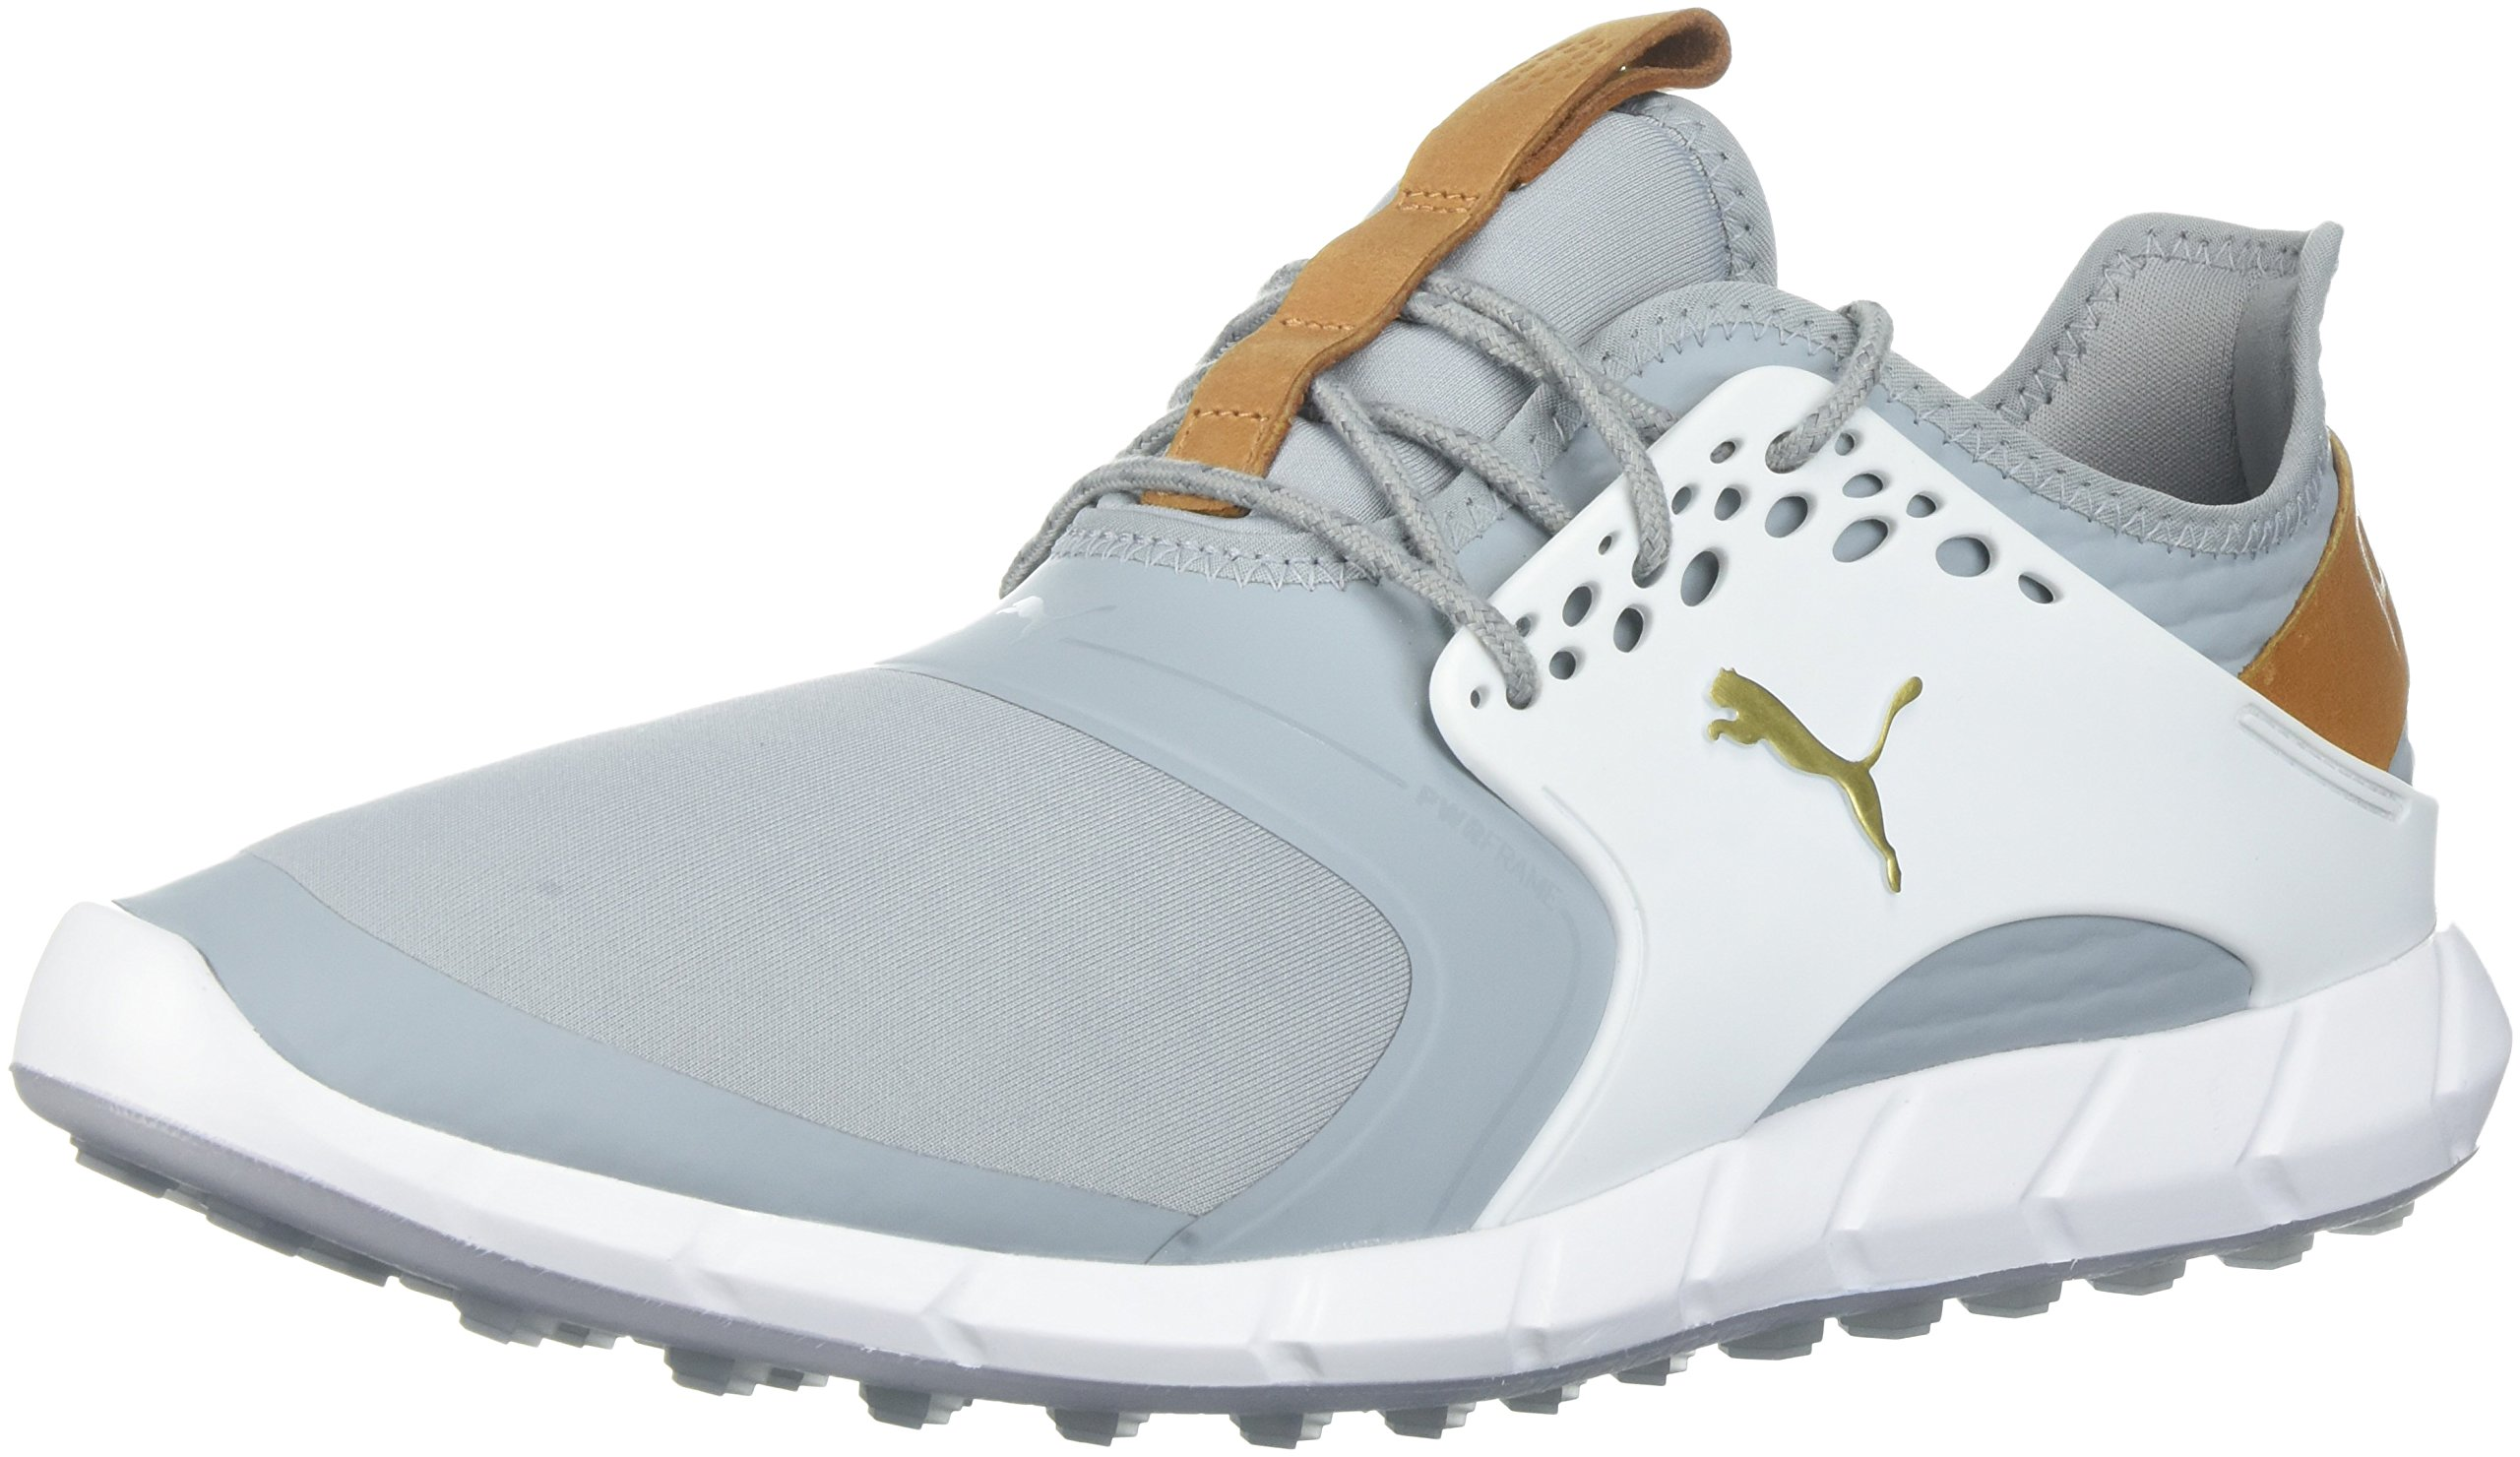 PUMA Golf Men's Ignite Pwrsport Golf Shoe, Quarry/Team Gold/White, 9.5 Medium US by PUMA